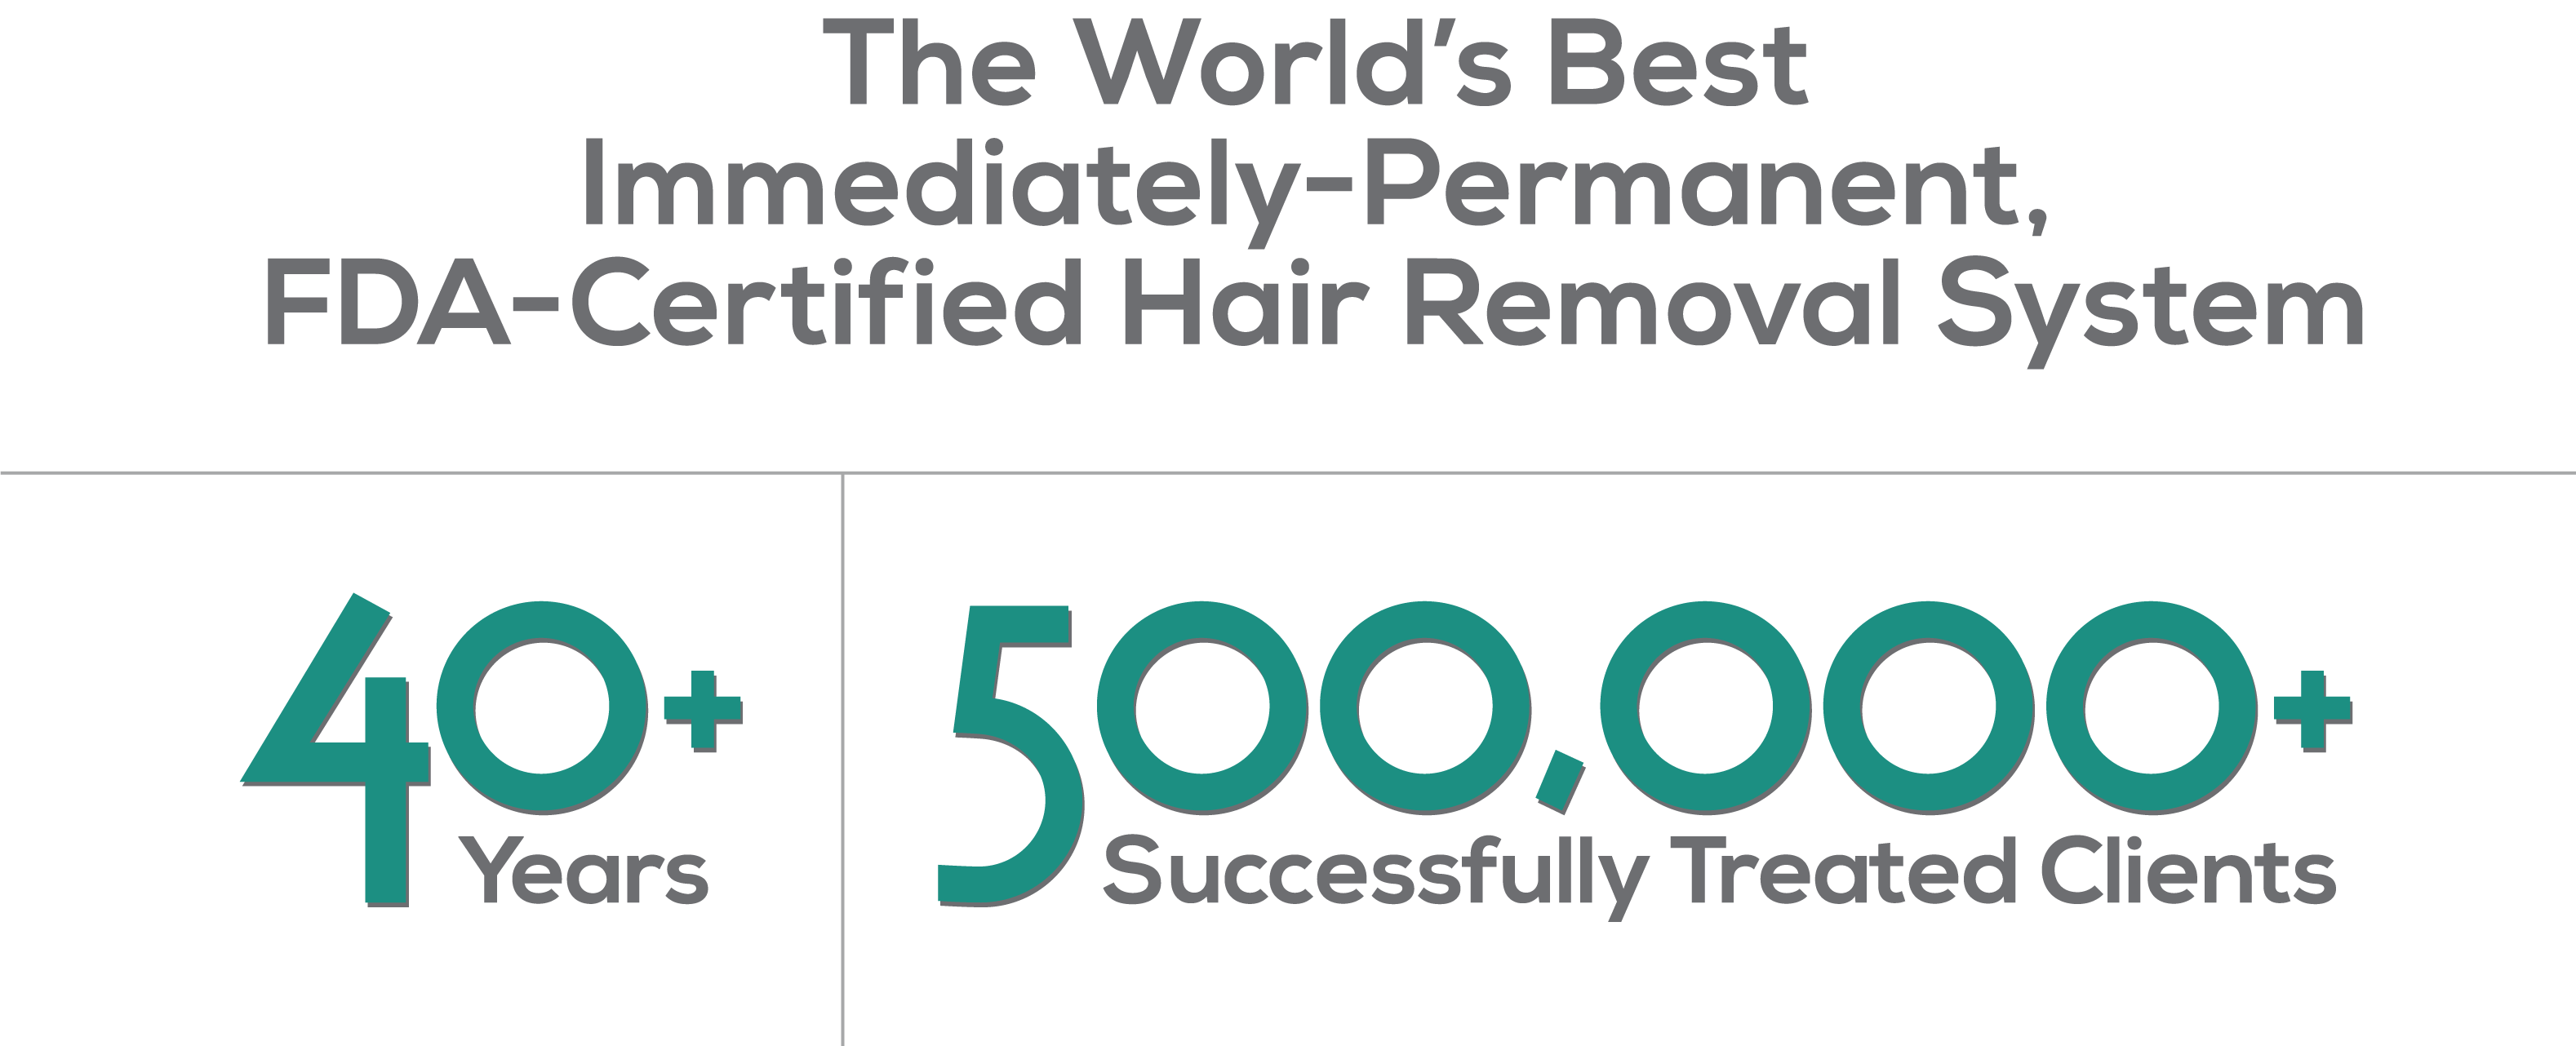 World's Best Immediately Permanent FDA-Certified Hair Removal System